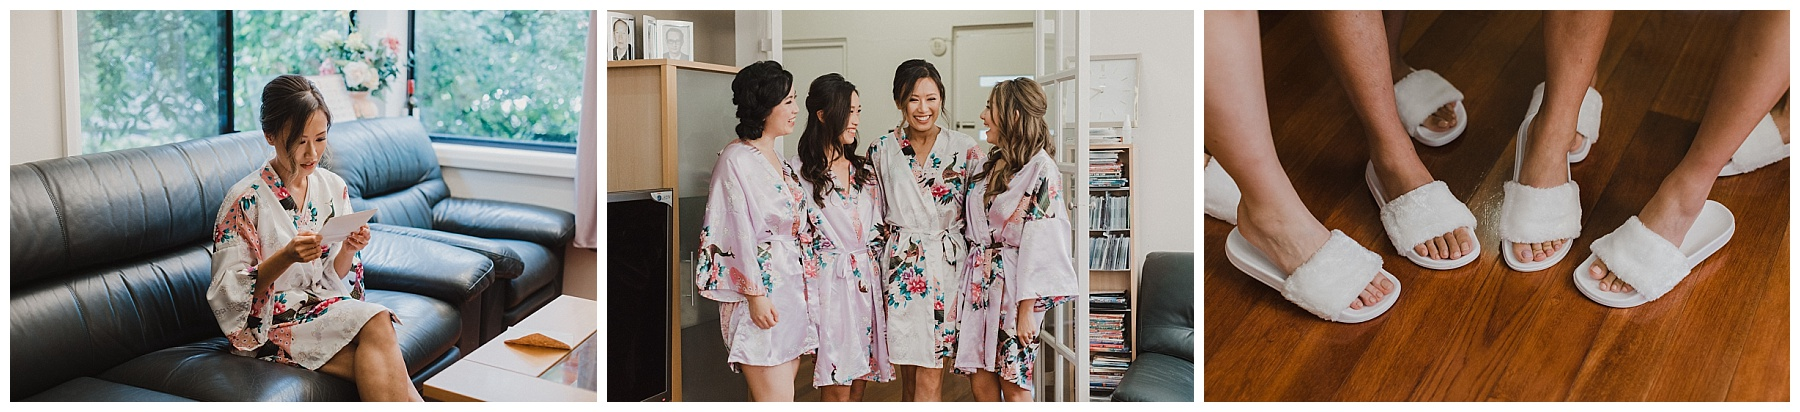 Bride and Bridesmaids posing in their robes and slippers